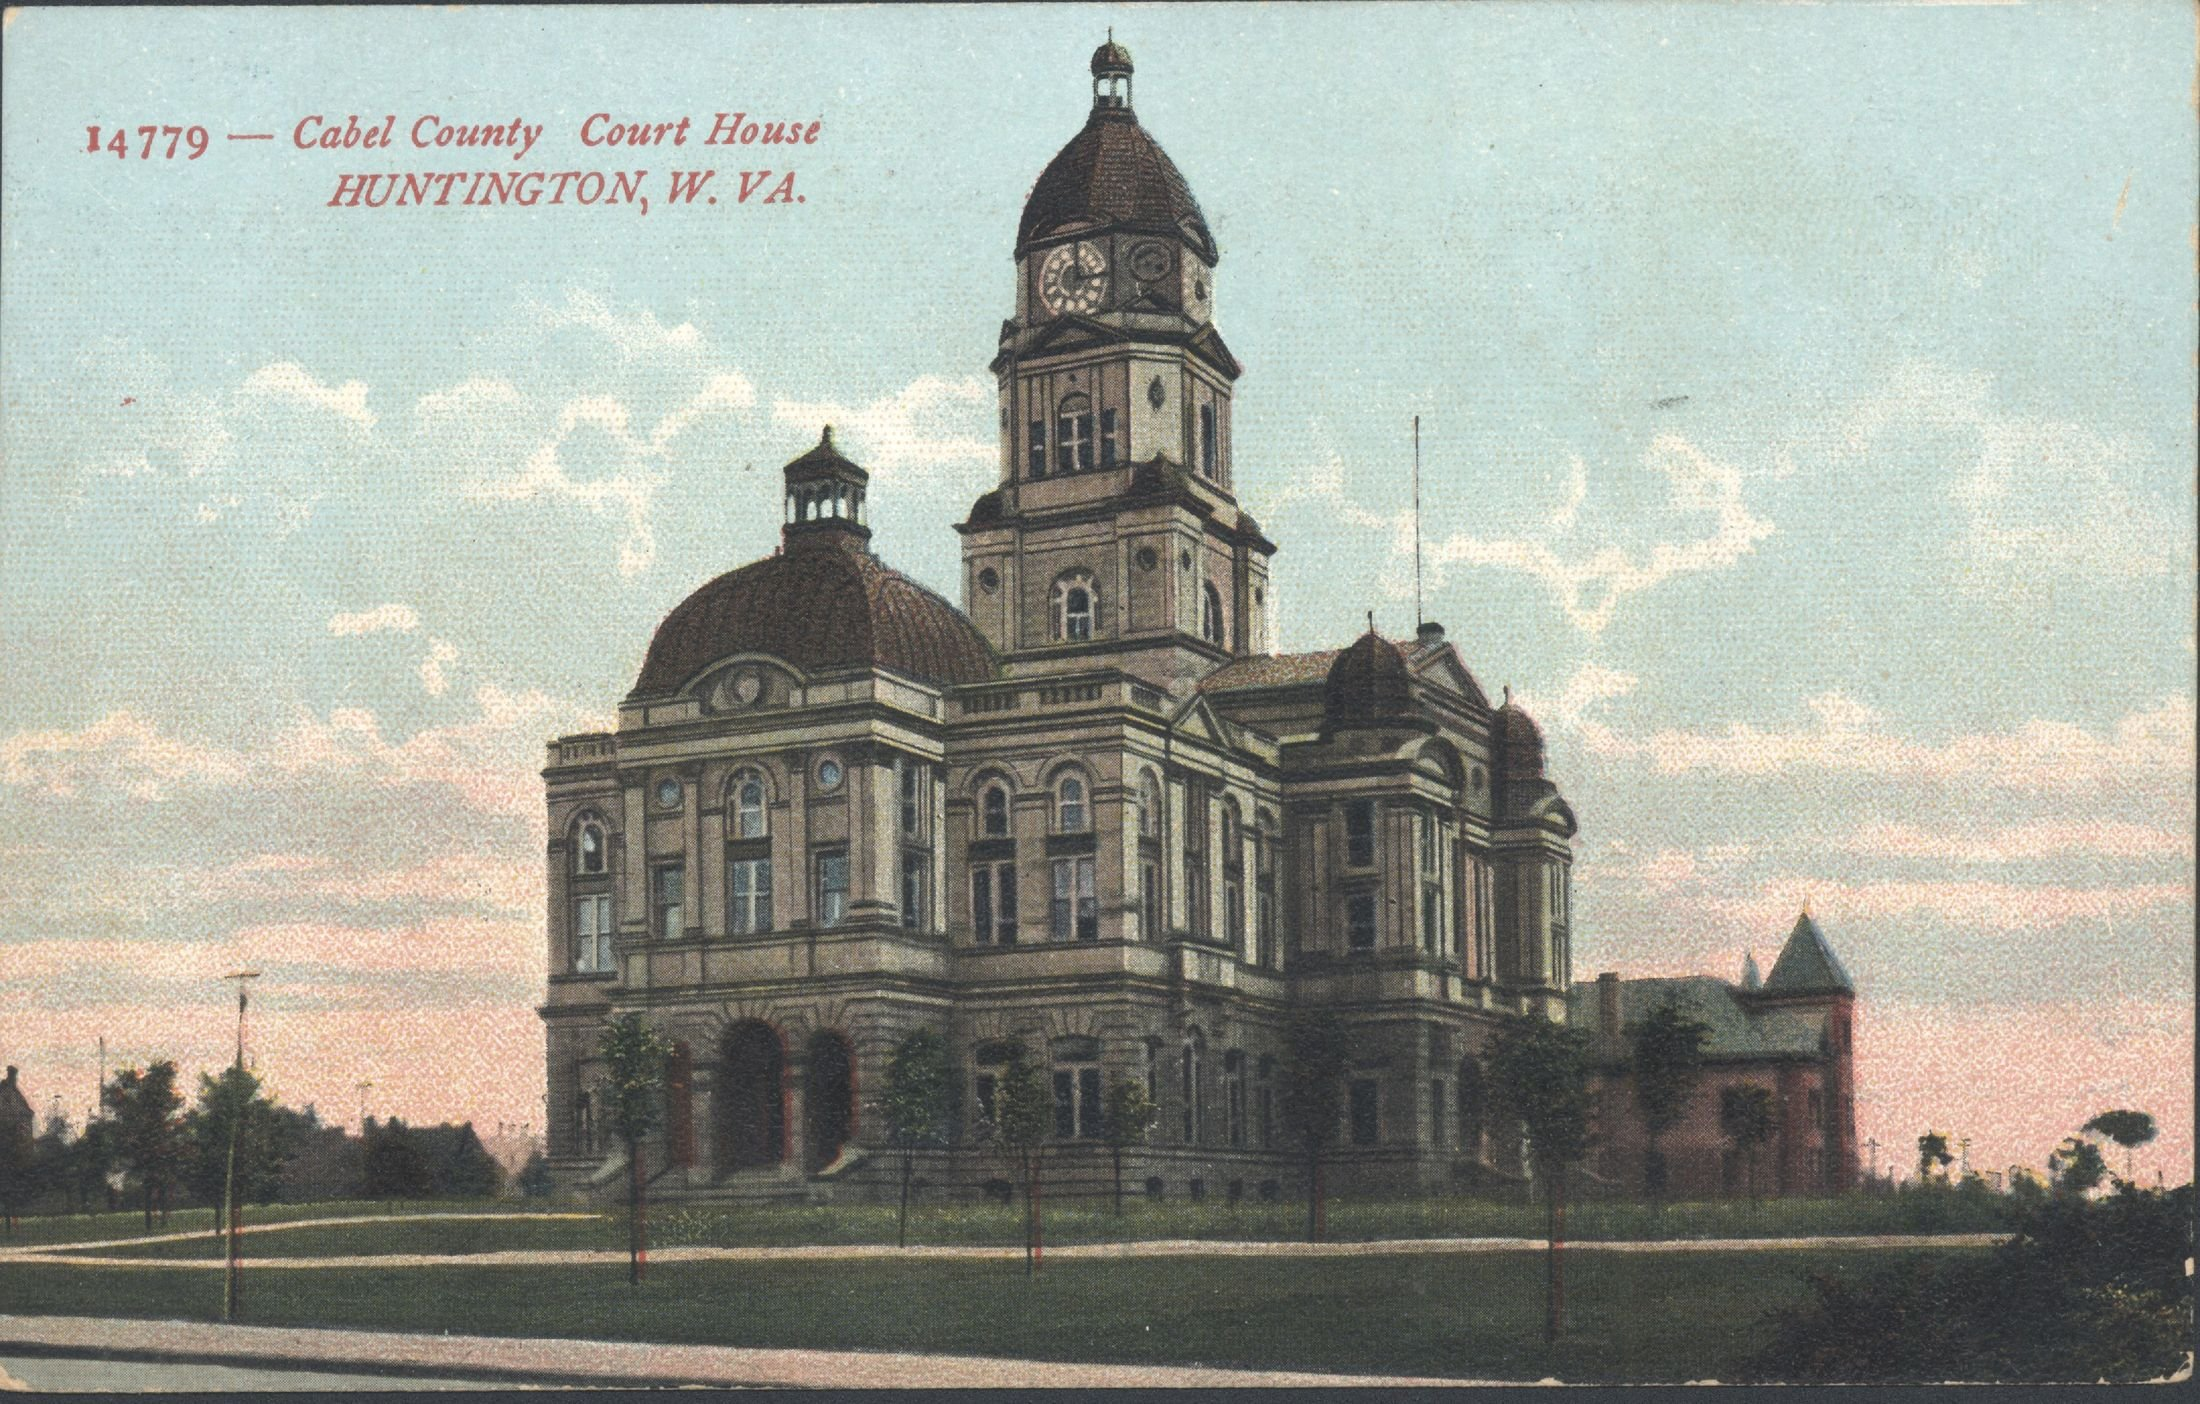 Color postcard from the early 1900s. Image courtesy of Marshall University Special Collections.